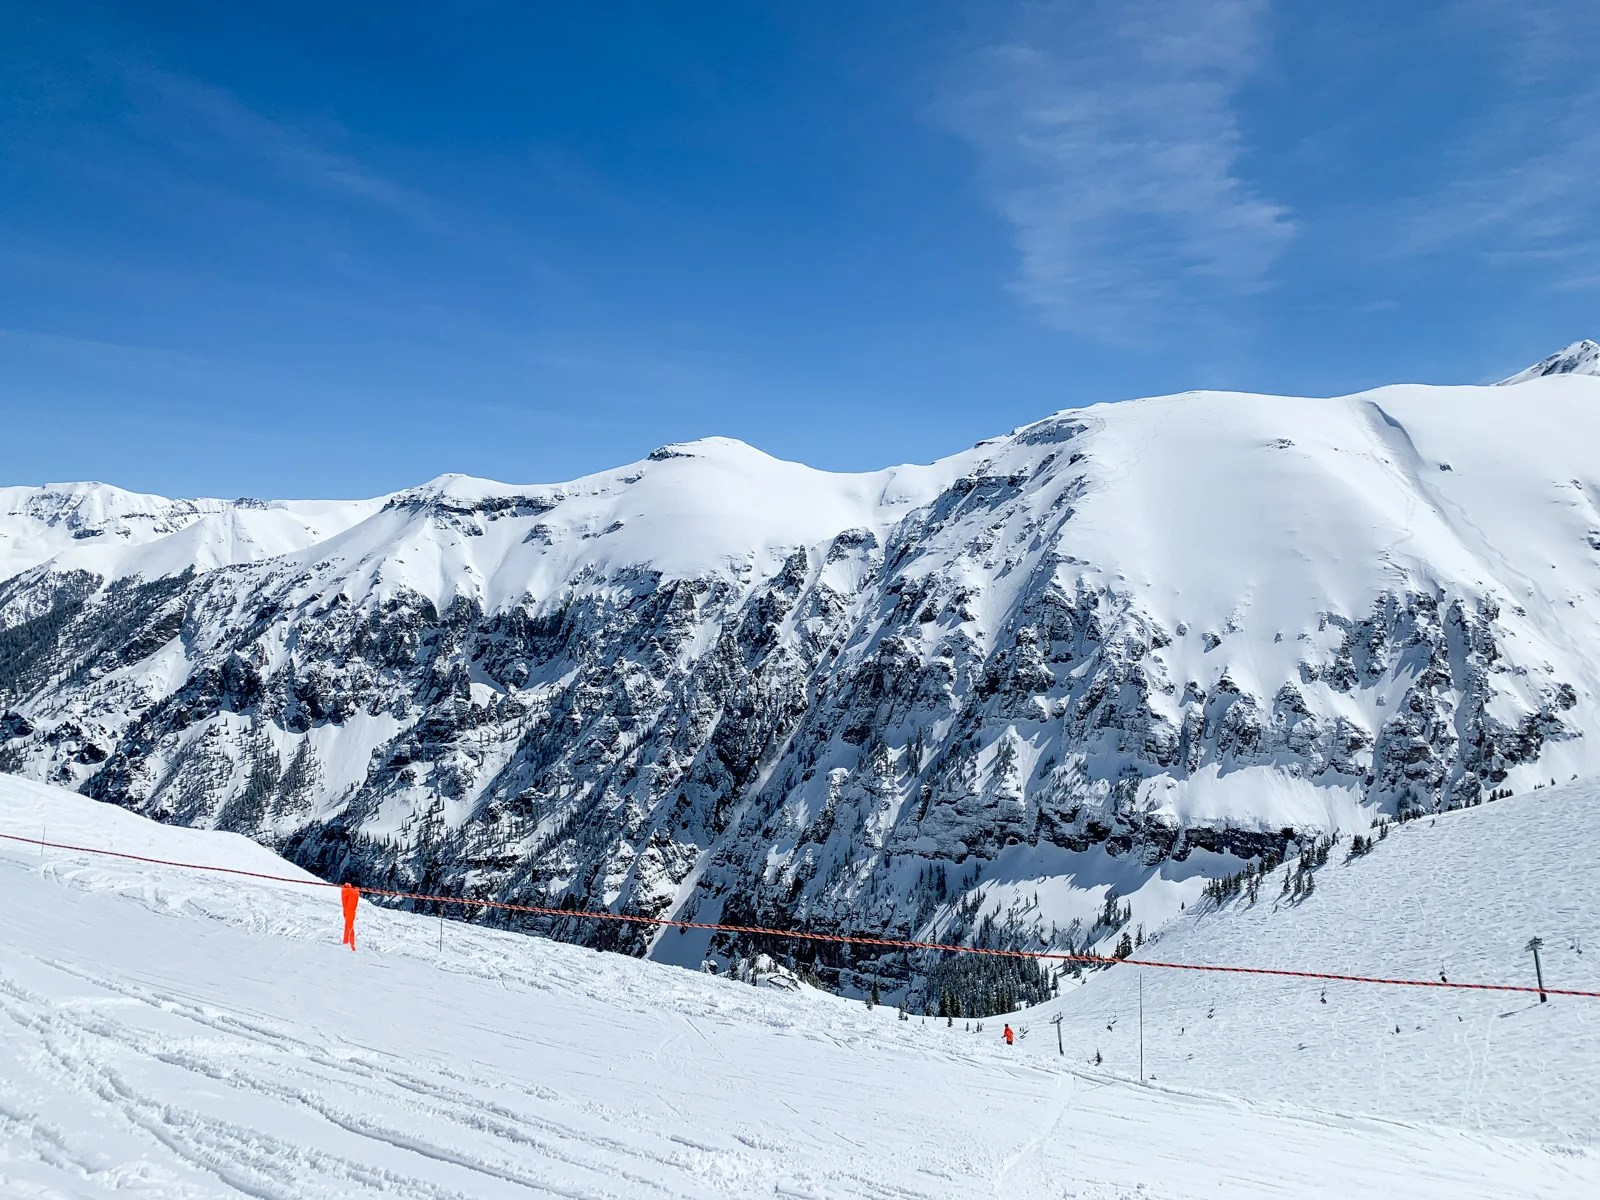 The Epic Pass Gets 17 New Ski Mountains Added